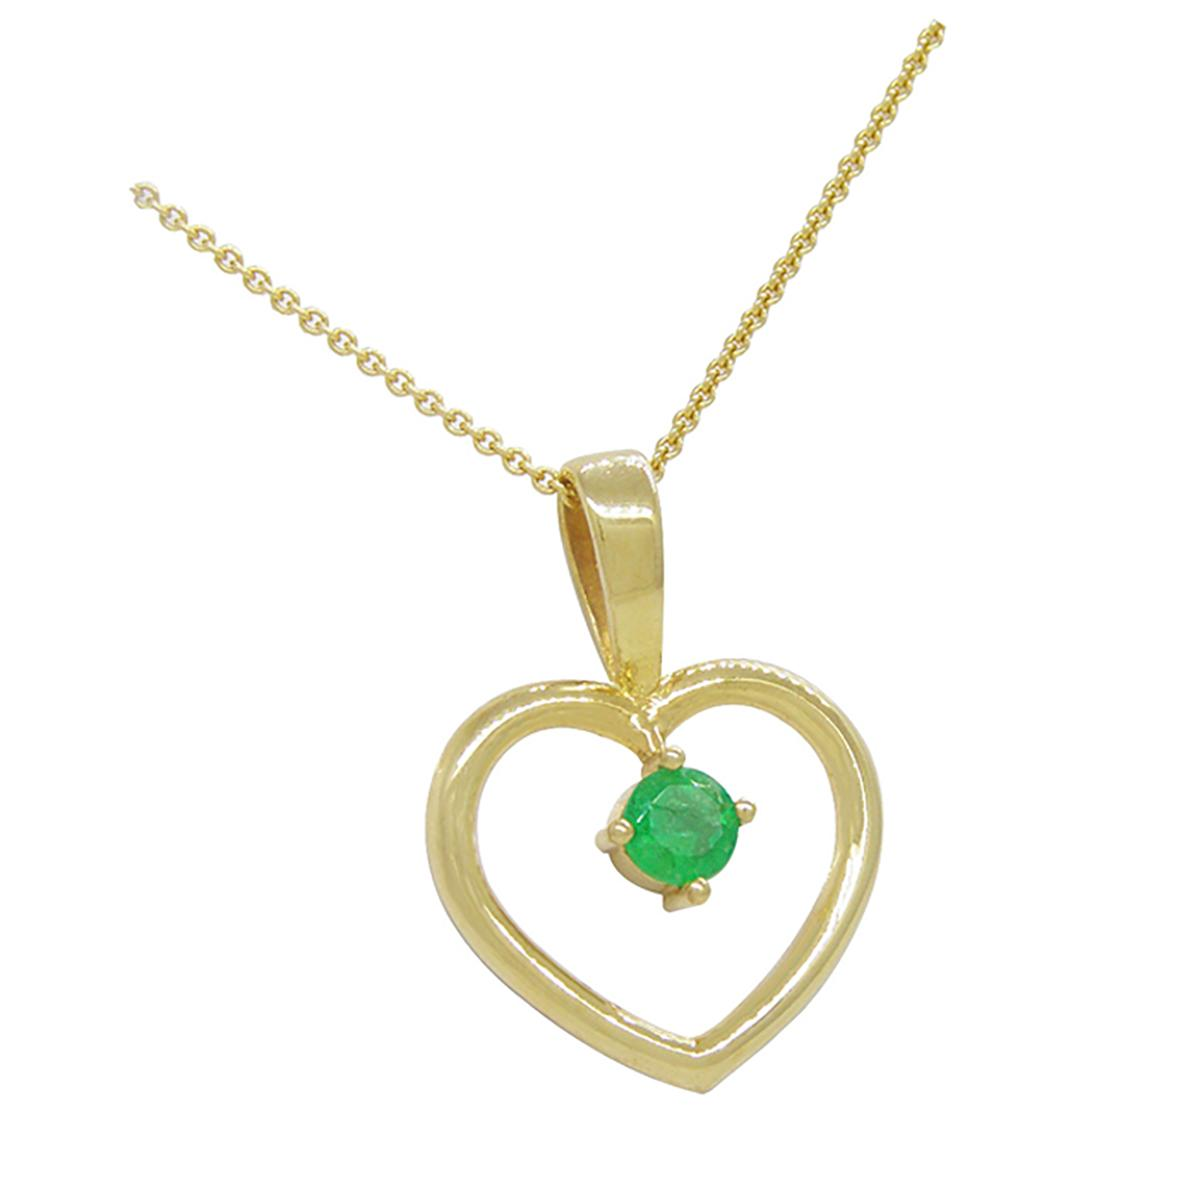 gold-plated-silver-heart-shape-pendant-with-genuine-round-cut-emerald